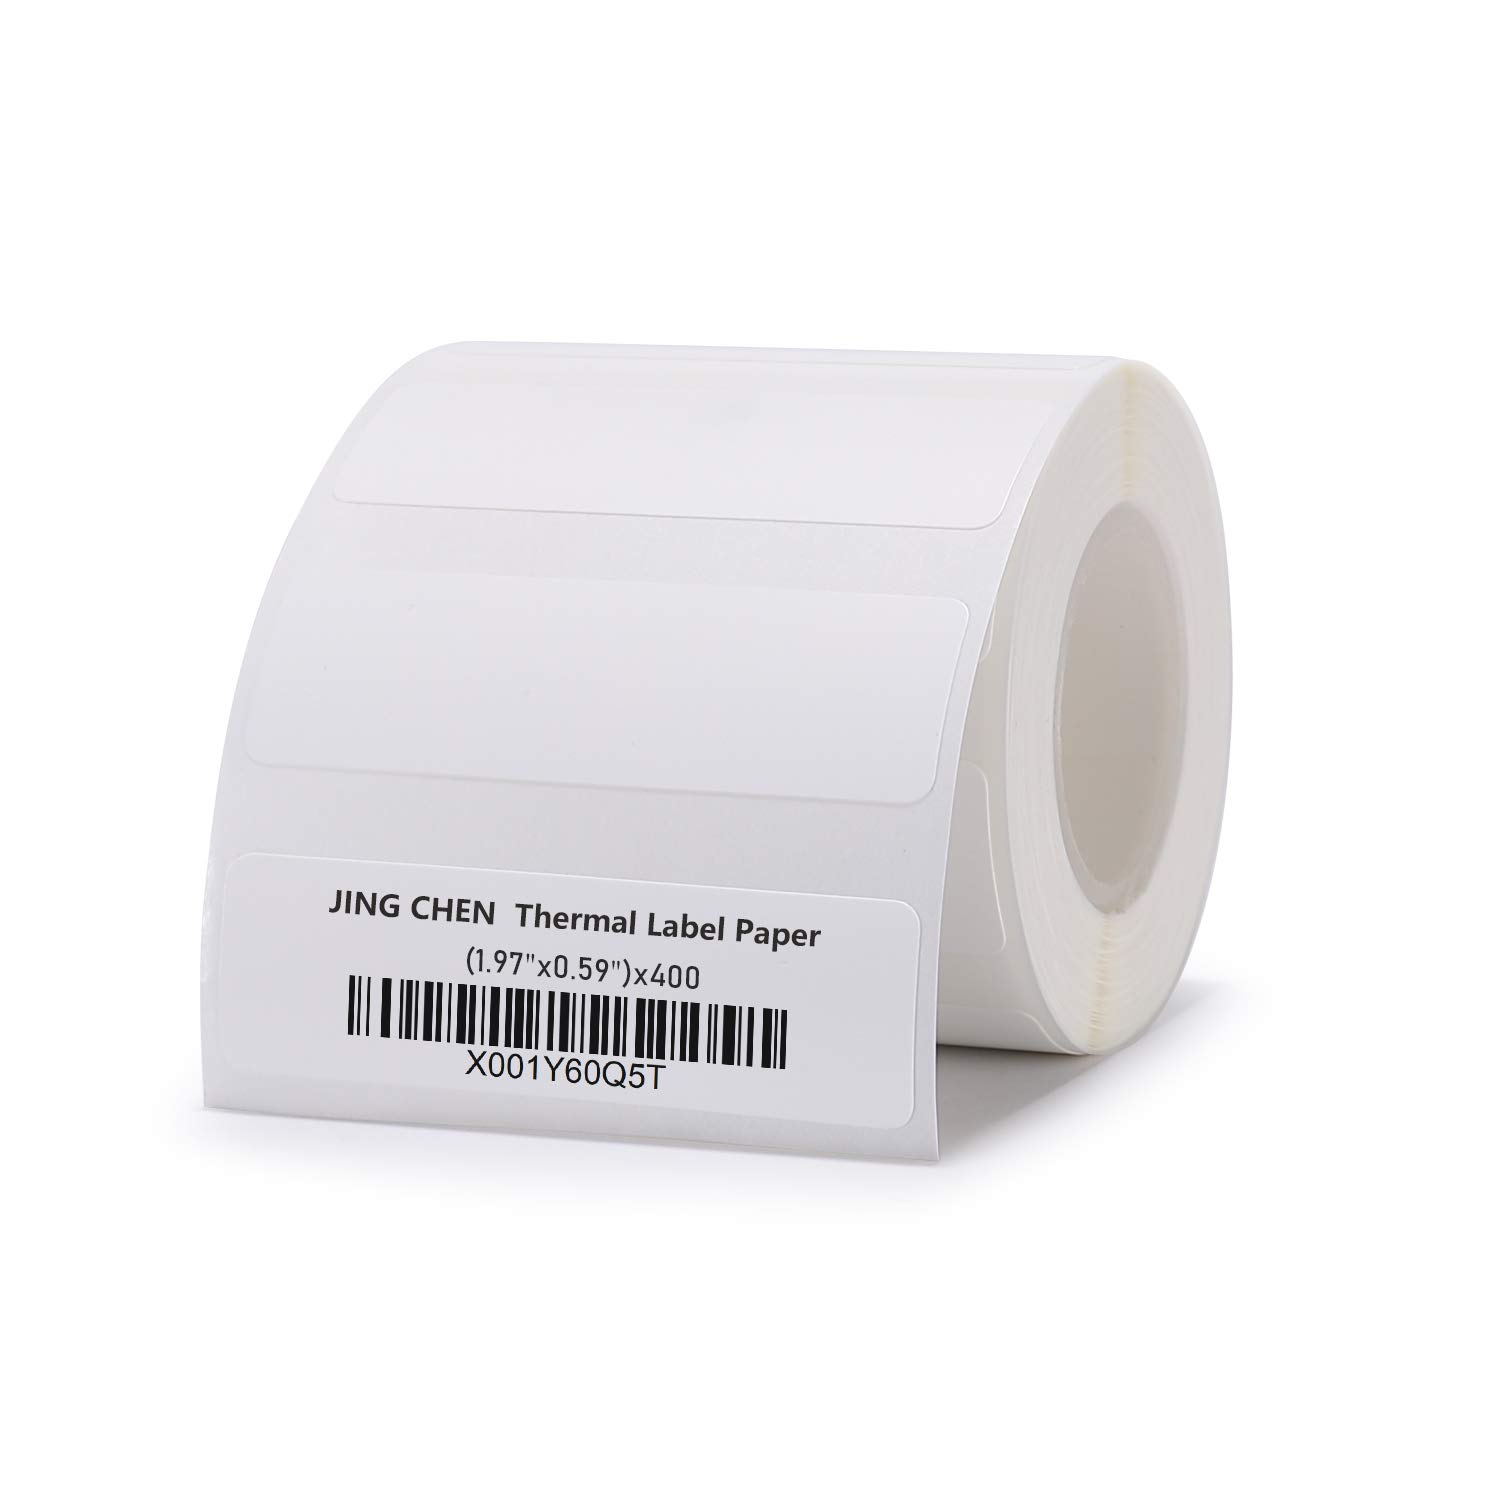 "JINGCHEN Thermal Label Paper, Print with B11/B3, Widely Used in Inventory/Food/Supermarkets/Clothing & Shoes & Hats, Label Printing, 1.97""x0.59"", 400 Labels/Roll"